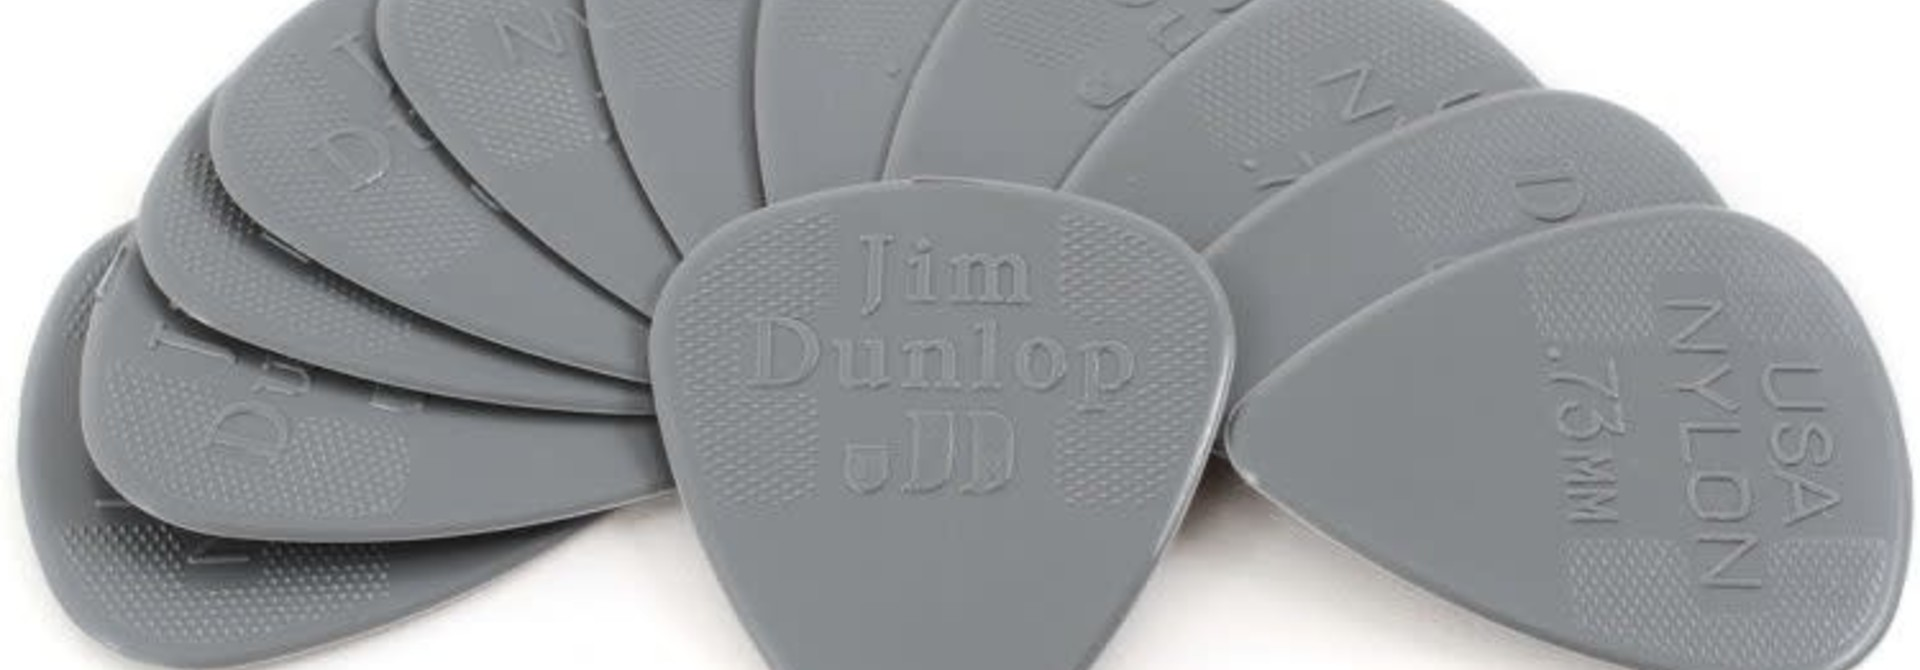 Dunlop Nylon Standard .73mm Pick 12-Pack